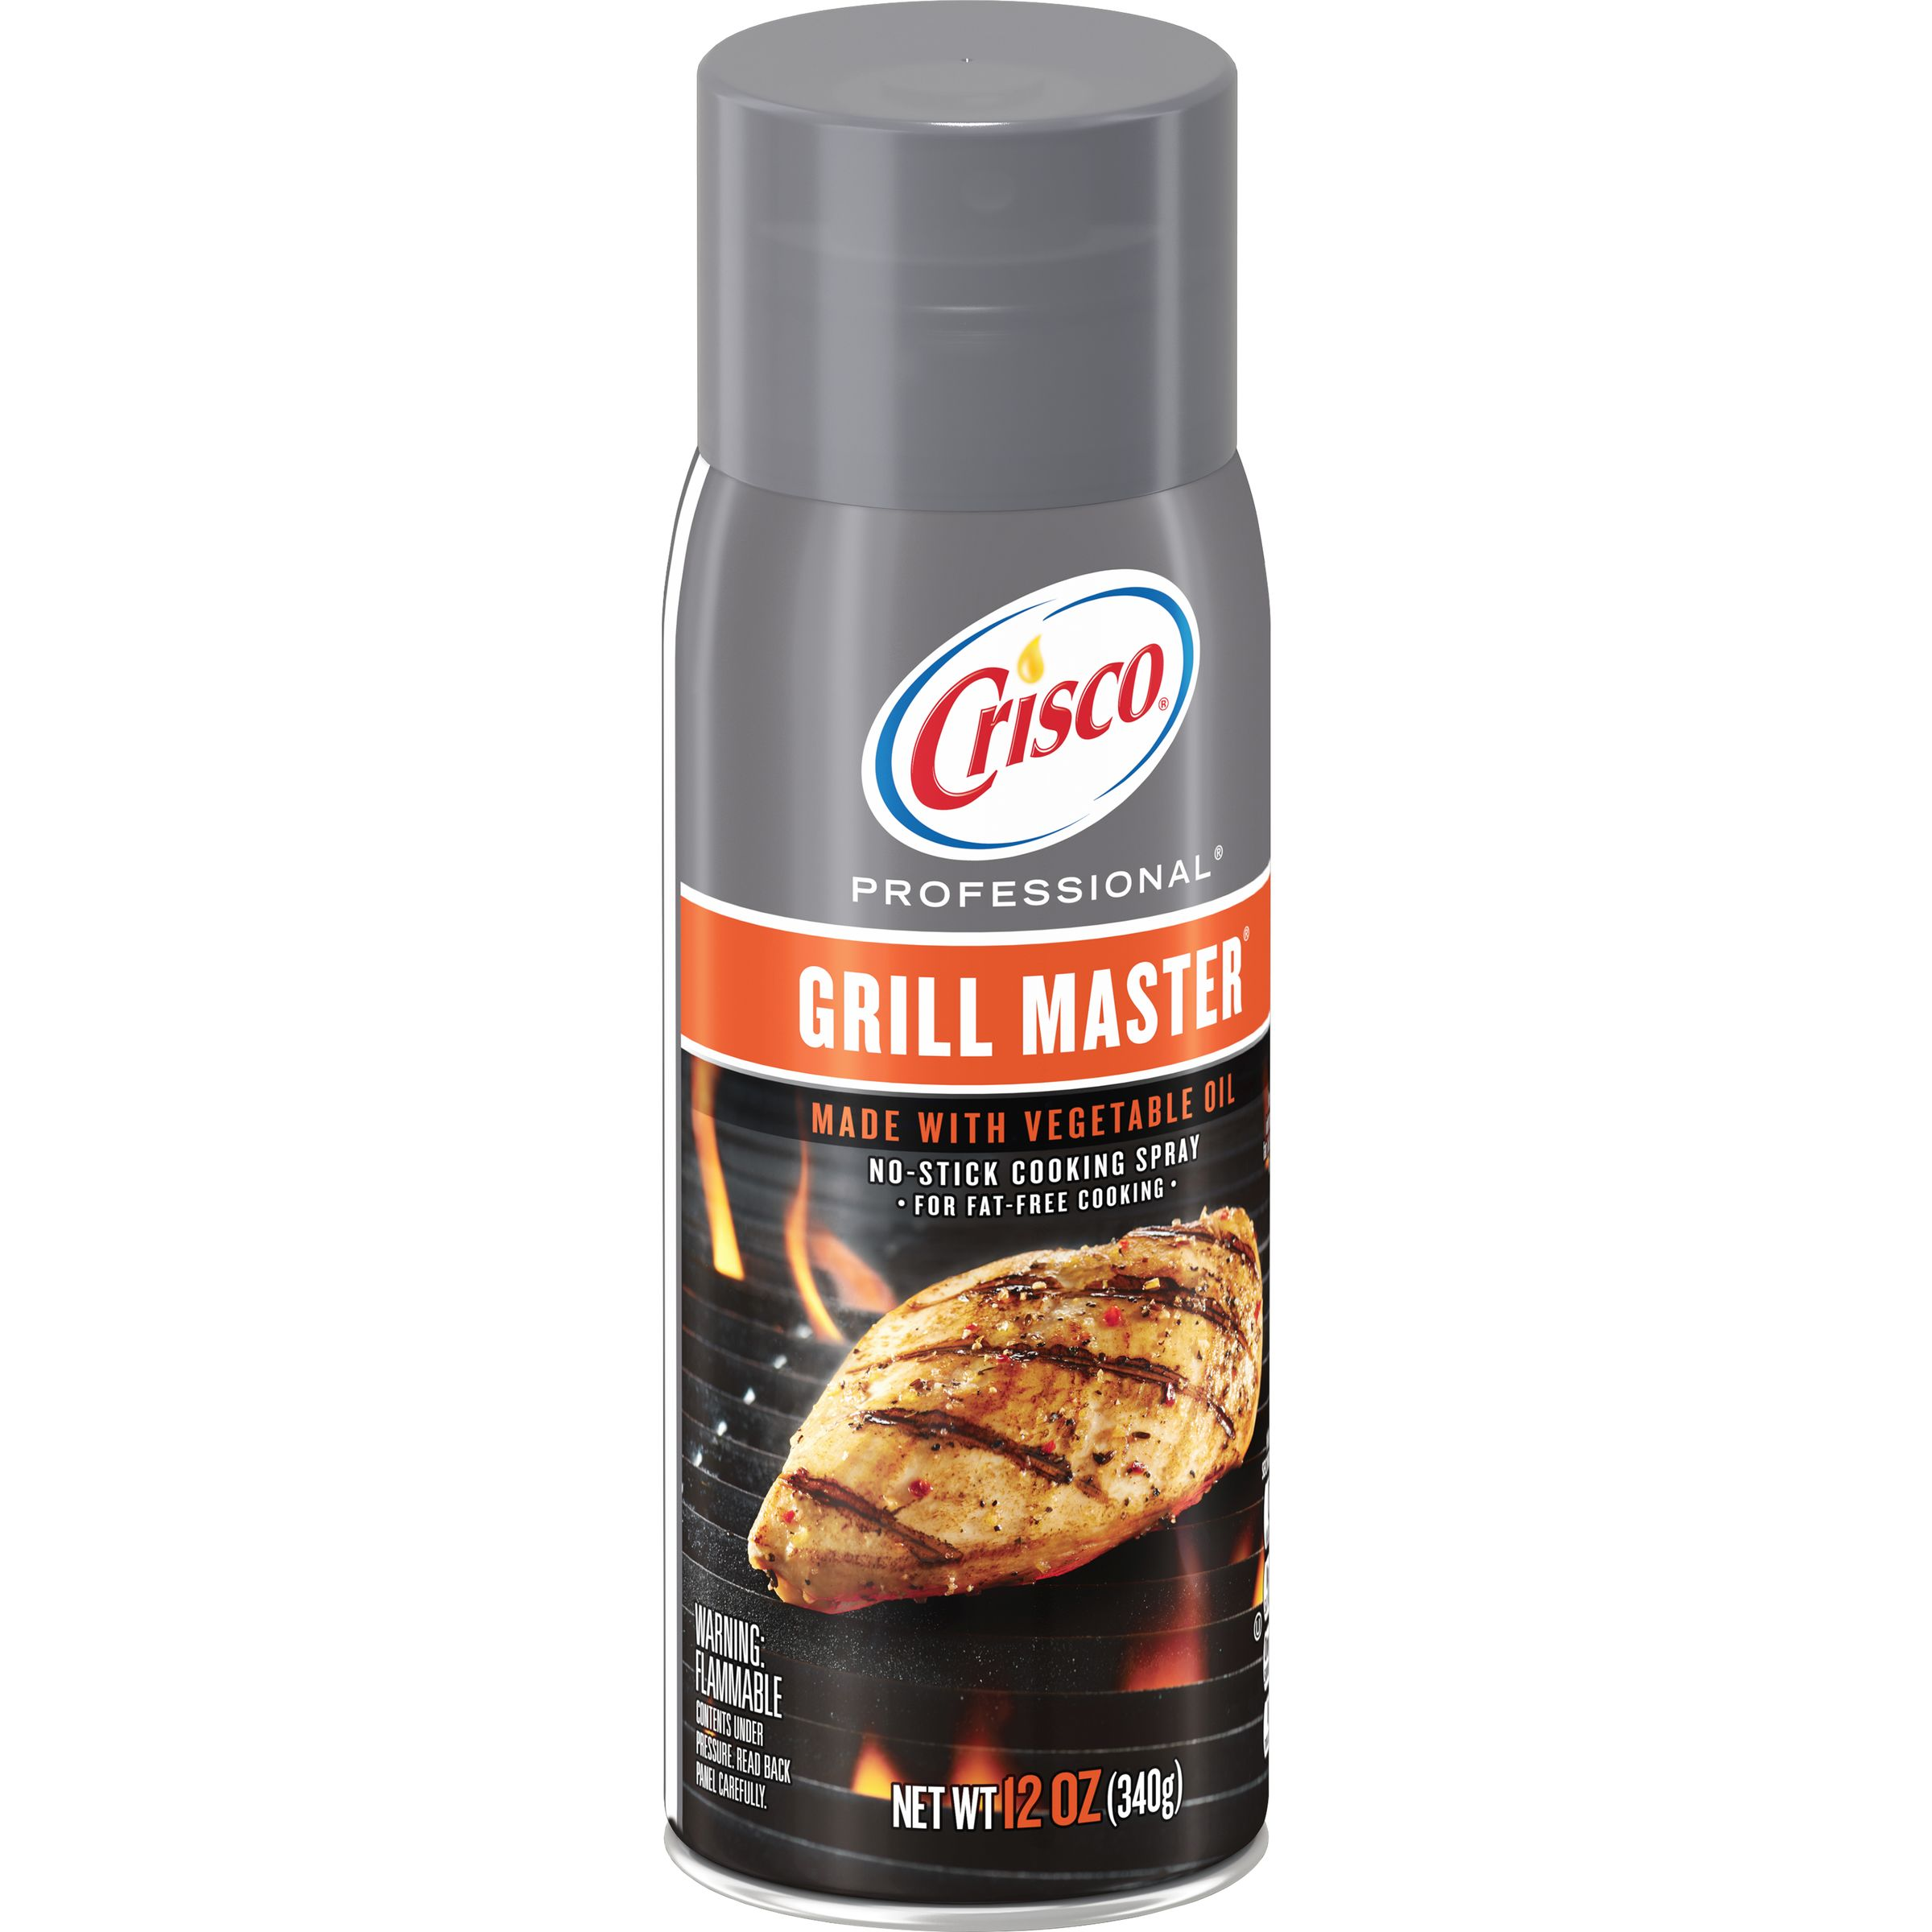 (2 Pack) Crisco Professional Grill Master No-Stick Grill Spray, 12-Ounce